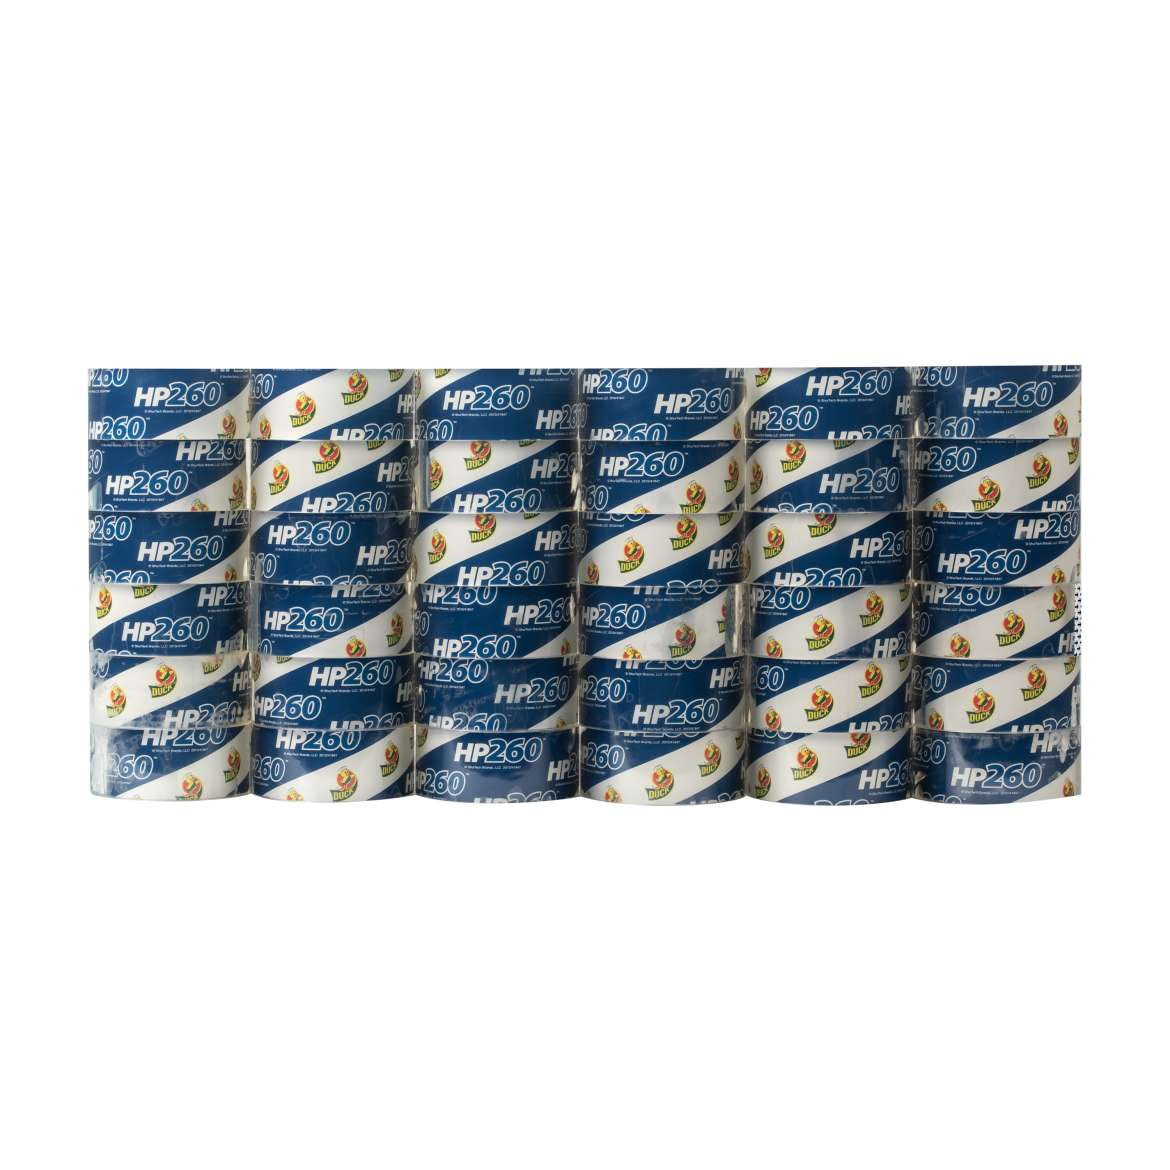 Duck® Brand HP260™ High Performance Packing Tape